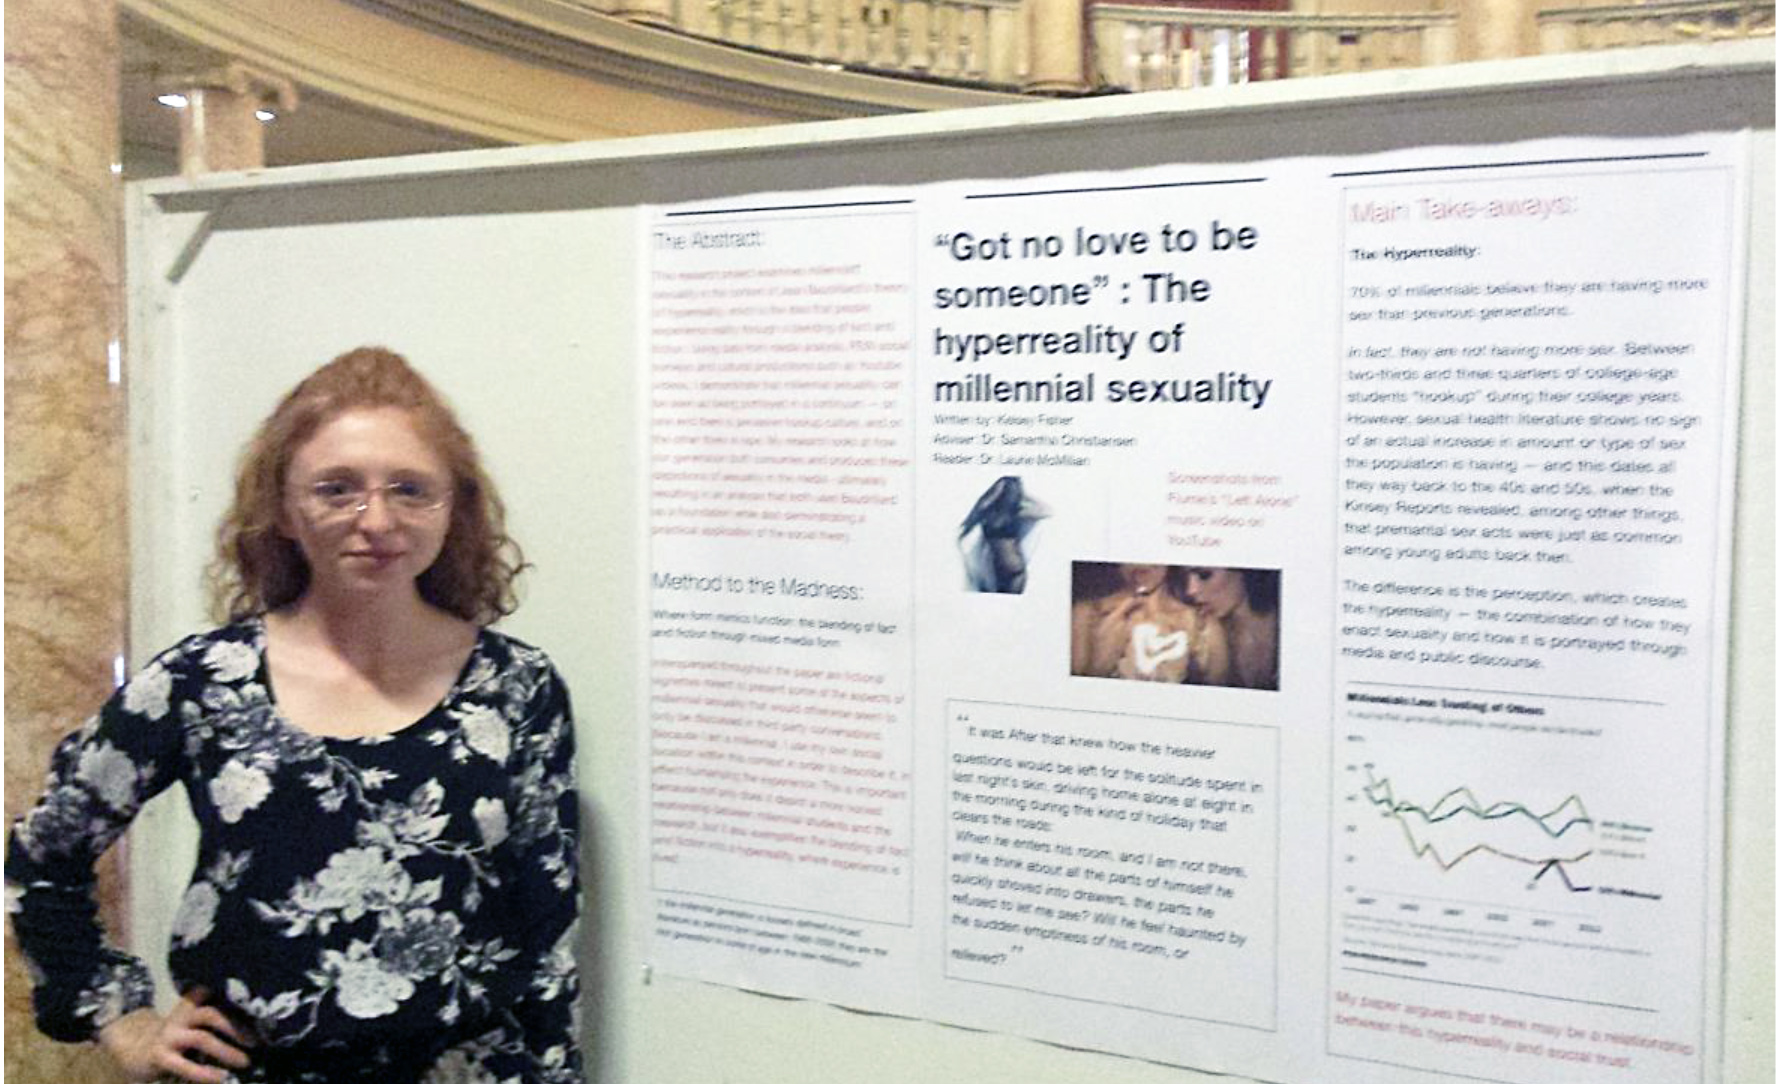 movie student thesis sexuality College students and sexual risk behavior by danielle r oster a thesis submitted in partial fullfillment of the requirements for the degree of master of arts in psychology.